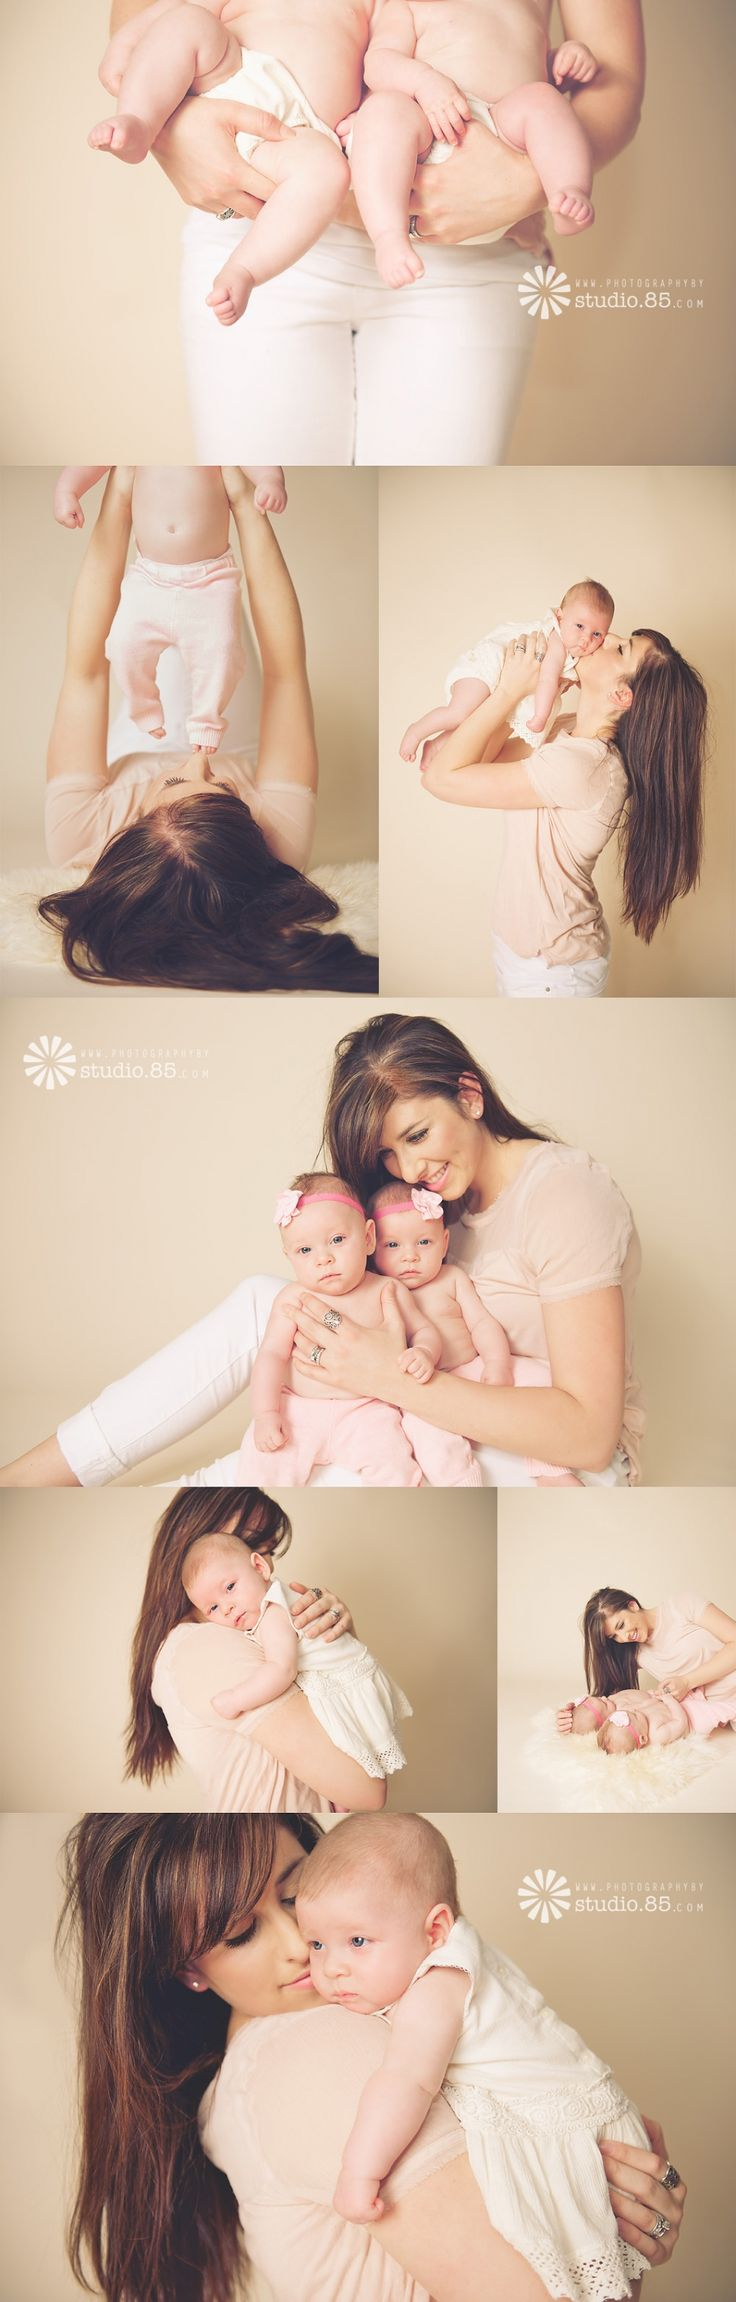 Manhattan KS Infant Photographer | Mommy & Me pics | twin pose ideas, cute baby pics, twin baby pictures